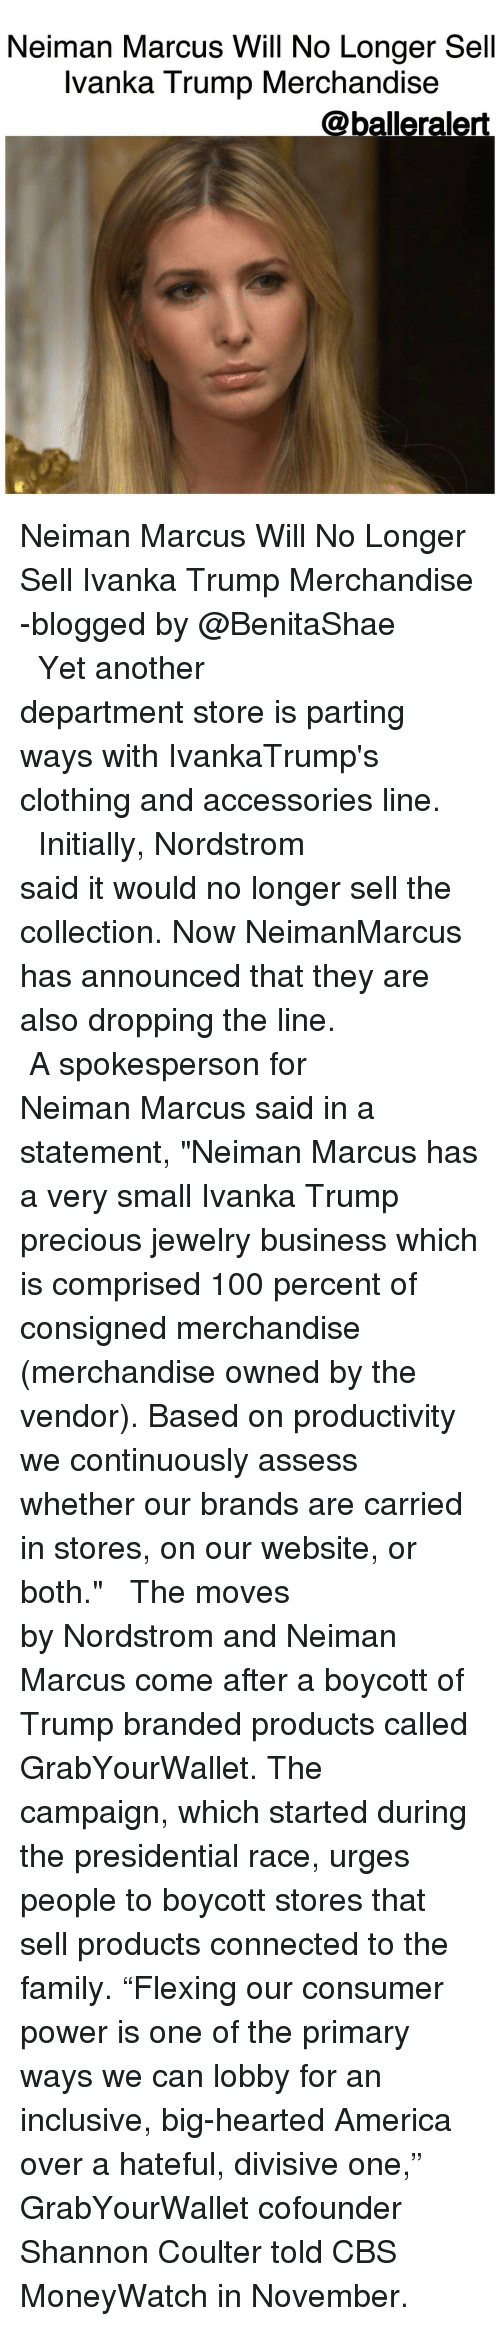 """Memes, Neiman Marcus, and Ivanka Trump: Neiman Marcus Will No Longer Sell  Ivanka Trump Merchandise  @balleralert. Neiman Marcus Will No Longer Sell Ivanka Trump Merchandise -blogged by @BenitaShae ⠀⠀⠀⠀⠀⠀⠀⠀⠀ ⠀⠀⠀⠀⠀⠀⠀⠀⠀ Yet another department store is parting ways with IvankaTrump's clothing and accessories line. ⠀⠀⠀⠀⠀⠀⠀⠀⠀ ⠀⠀⠀⠀⠀⠀⠀⠀⠀ Initially, Nordstrom said it would no longer sell the collection. Now NeimanMarcus has announced that they are also dropping the line. ⠀⠀⠀⠀⠀⠀⠀⠀⠀ ⠀⠀⠀⠀⠀⠀⠀⠀⠀ A spokesperson for Neiman Marcus said in a statement, """"Neiman Marcus has a very small Ivanka Trump precious jewelry business which is comprised 100 percent of consigned merchandise (merchandise owned by the vendor). Based on productivity we continuously assess whether our brands are carried in stores, on our website, or both."""" ⠀⠀⠀⠀⠀⠀⠀⠀⠀ ⠀⠀⠀⠀⠀⠀⠀⠀⠀ The moves by Nordstrom and Neiman Marcus come after a boycott of Trump branded products called GrabYourWallet. The campaign, which started during the presidential race, urges people to boycott stores that sell products connected to the family. """"Flexing our consumer power is one of the primary ways we can lobby for an inclusive, big-hearted America over a hateful, divisive one,"""" GrabYourWallet cofounder Shannon Coulter told CBS MoneyWatch in November."""